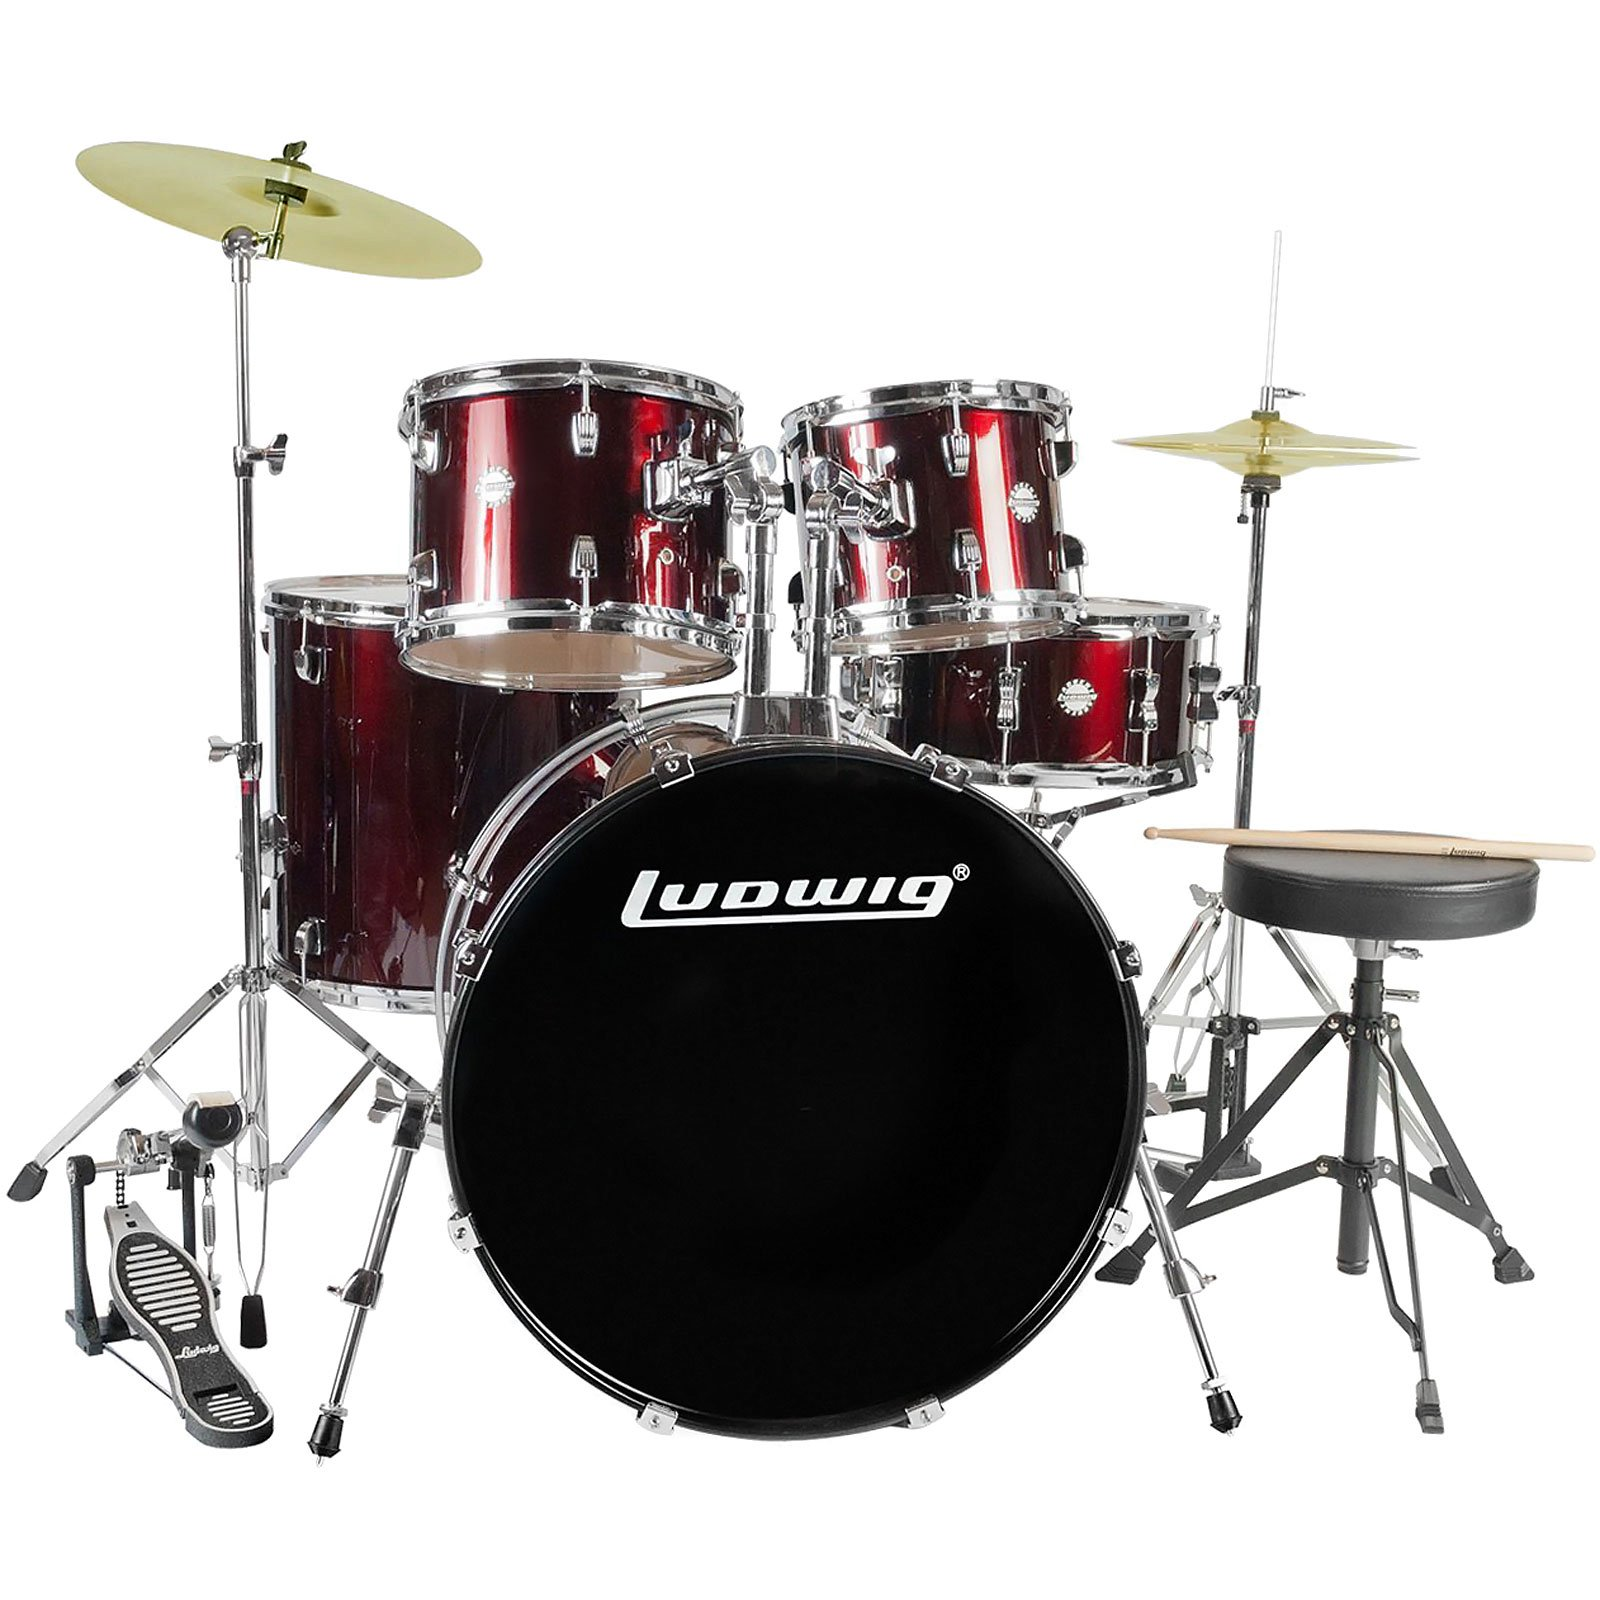 Ludwig Accent Drive 5-Pc Drum Set (LC1754) Wine Red Sparkle - Includes: Hardware, Throne, Pedal, Cymbals, Sticks & Drumheads